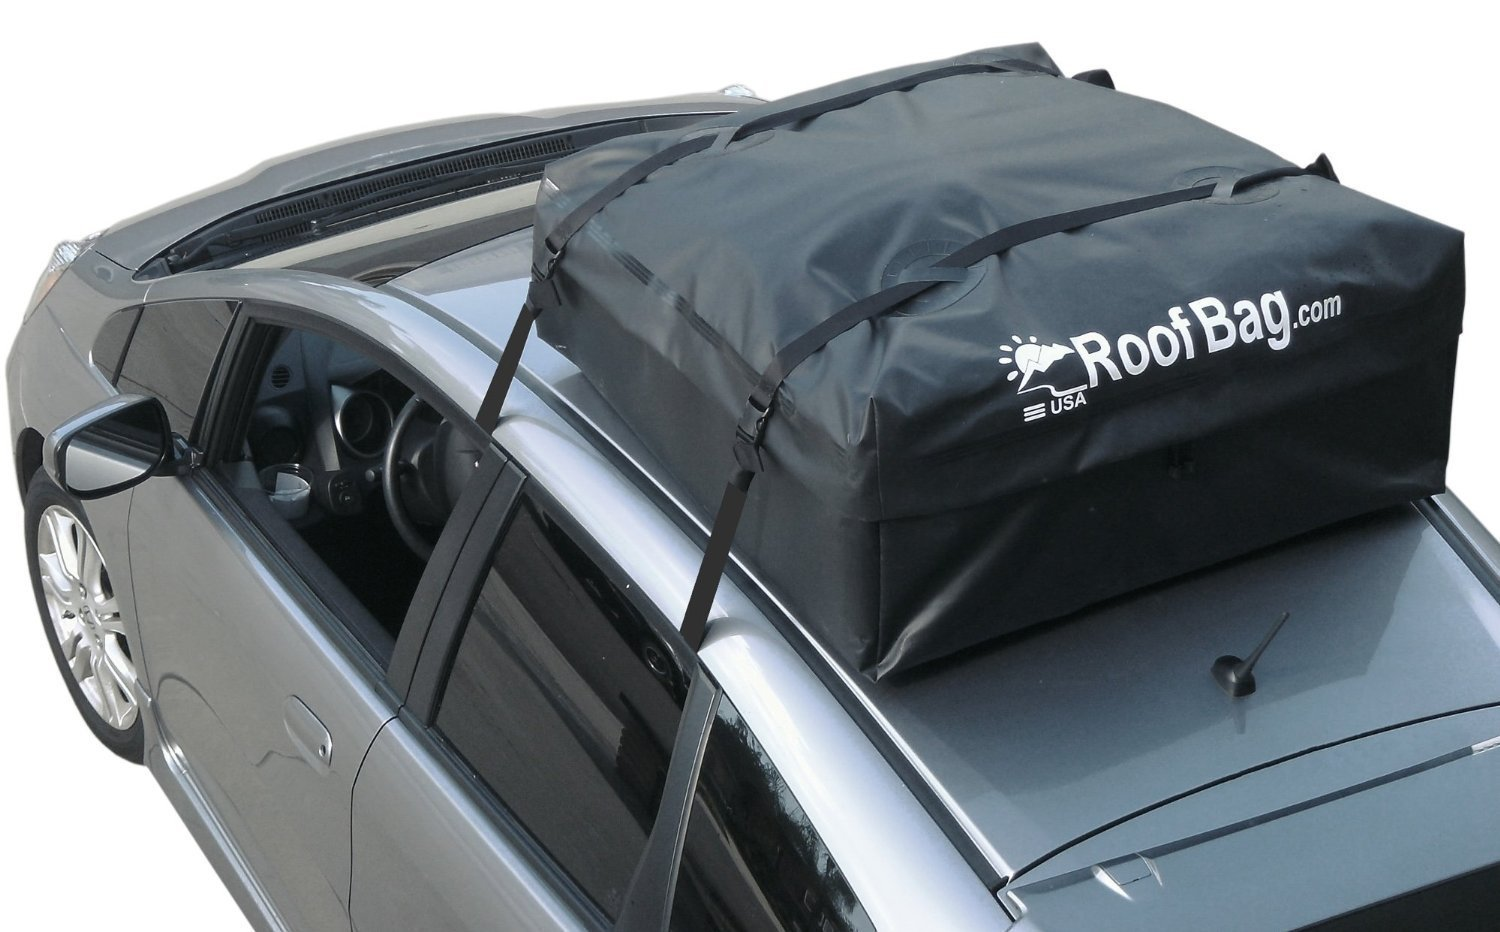 RoofBag - Made in USA, 100% Waterproof Car Top Carrier (Works on ALL Cars- No Rack Needed) - Includes Protective Mat + Storage Bag + Heavy Duty Straps by RoofBag